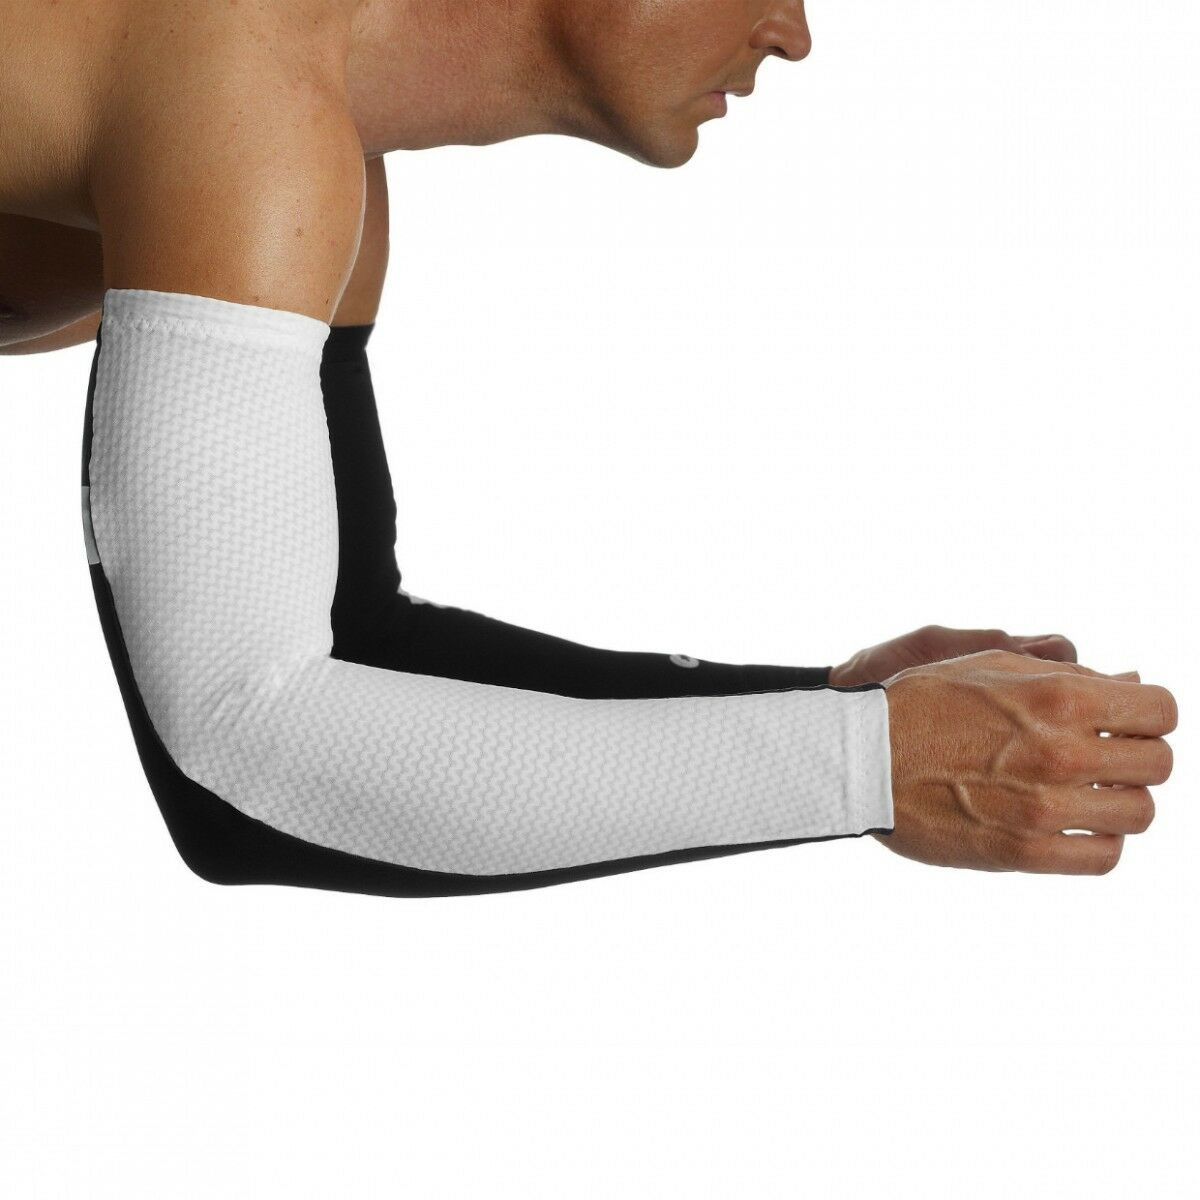 Assos S7 Cycling Arm warmers - White - Size II - RRP .99